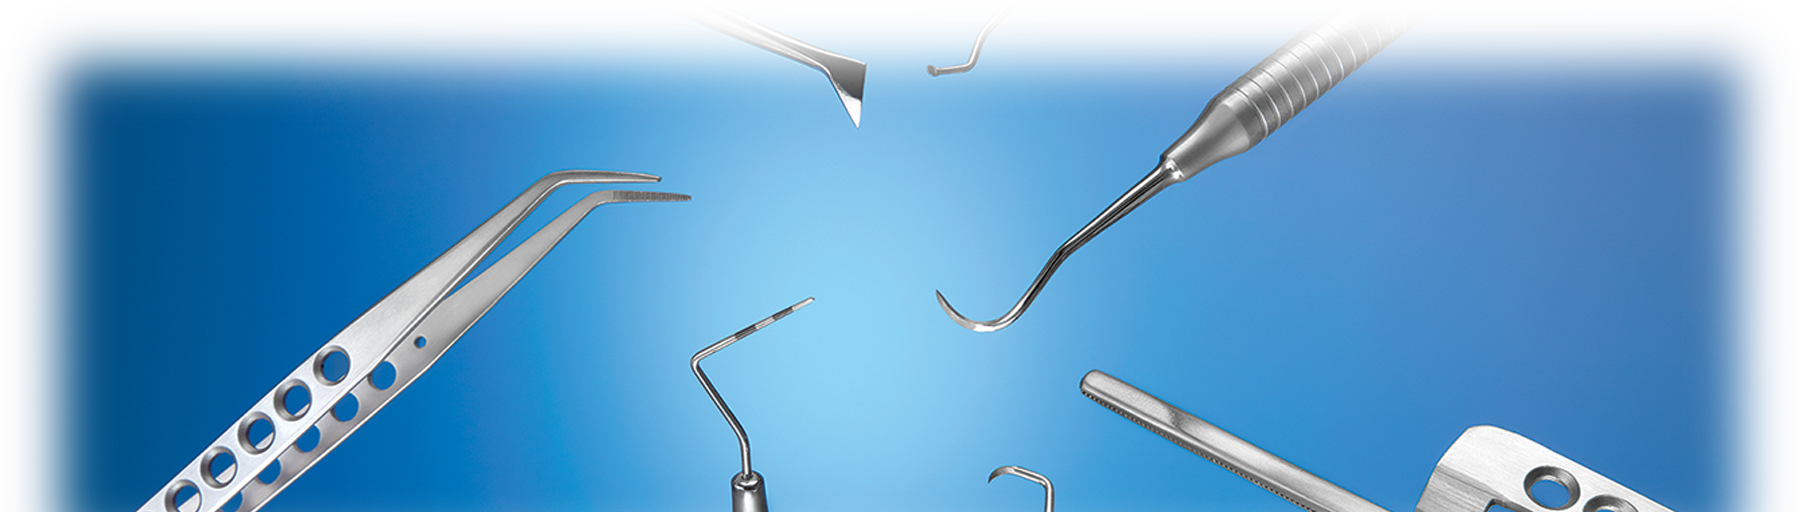 Composite Filling Instruments